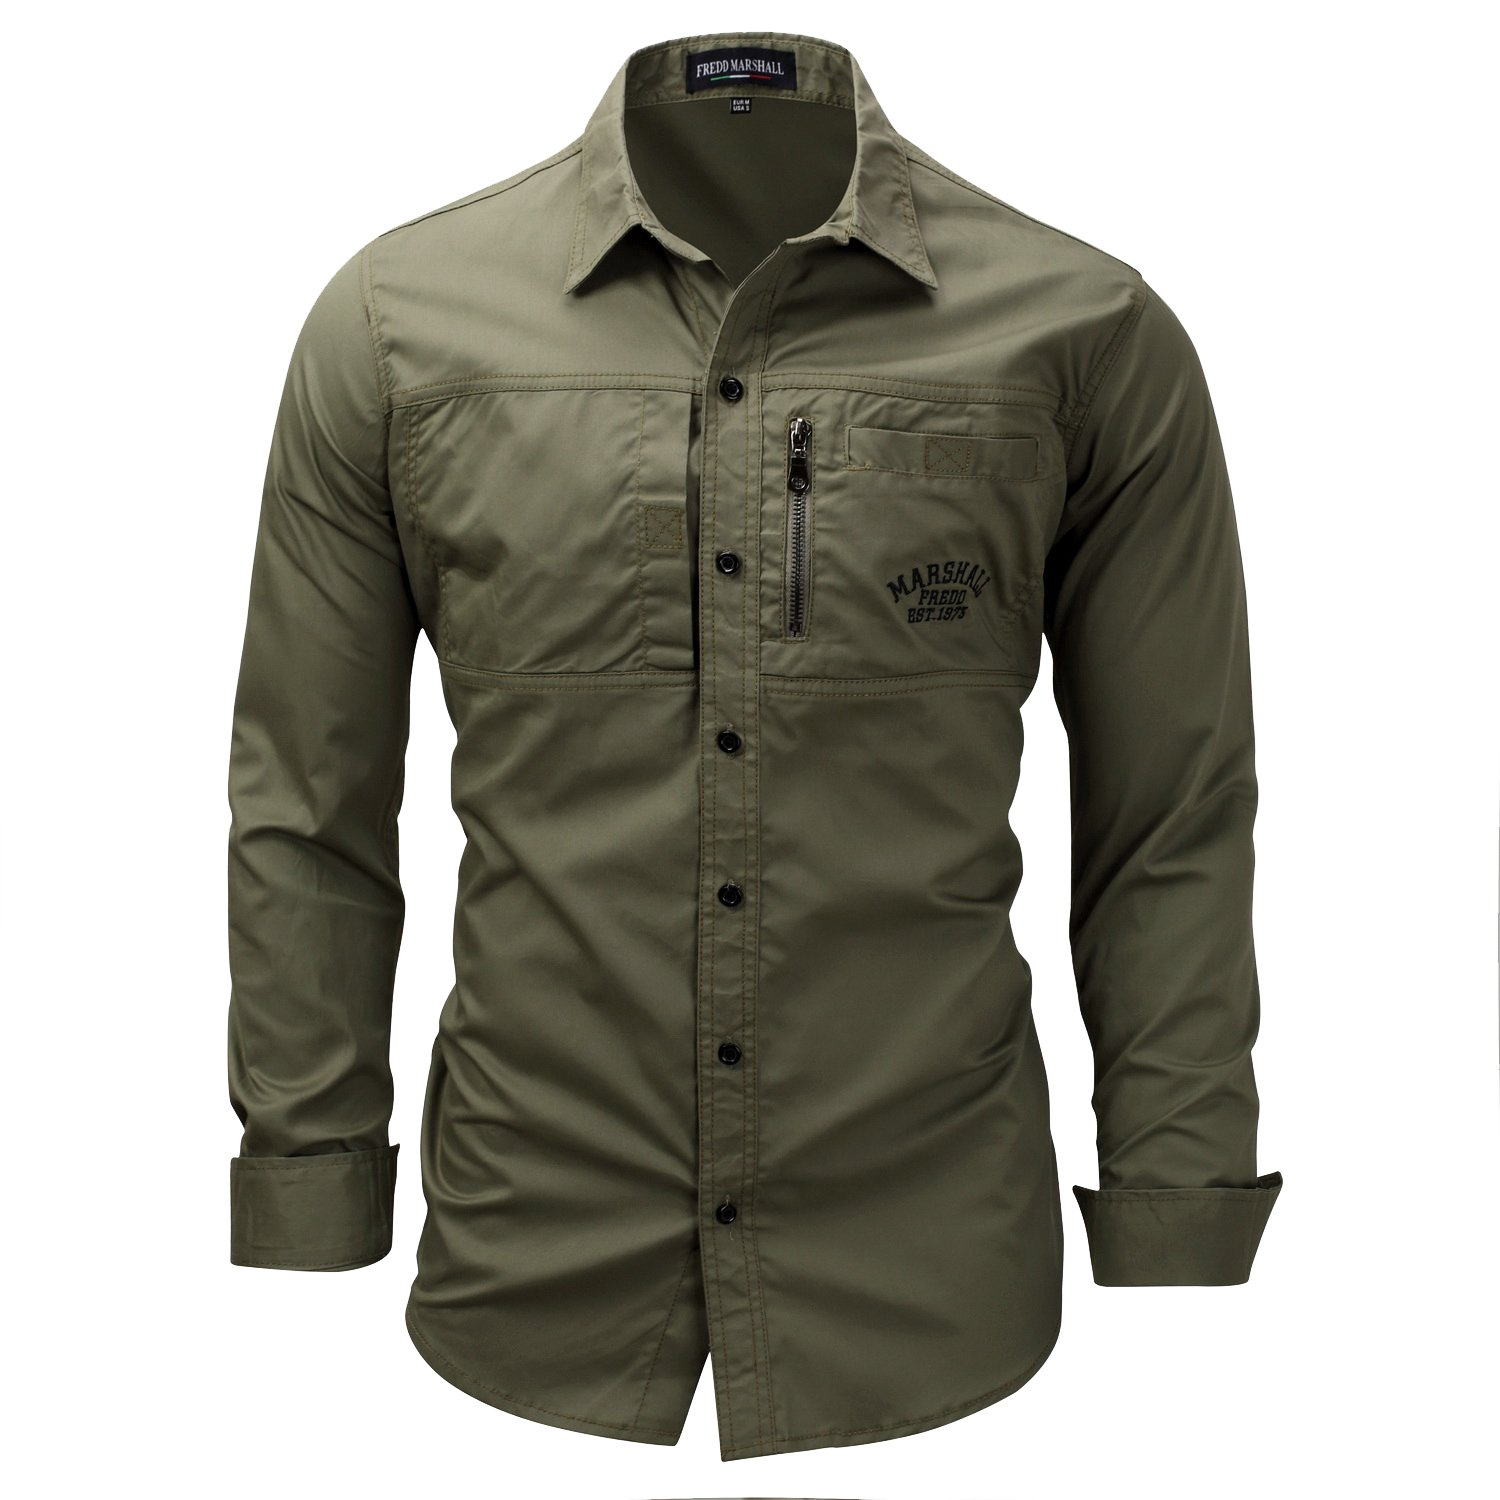 K-Men Men's Solid Color Outdoor Army Green Long-Sleeve Classic Woven Shirts XL